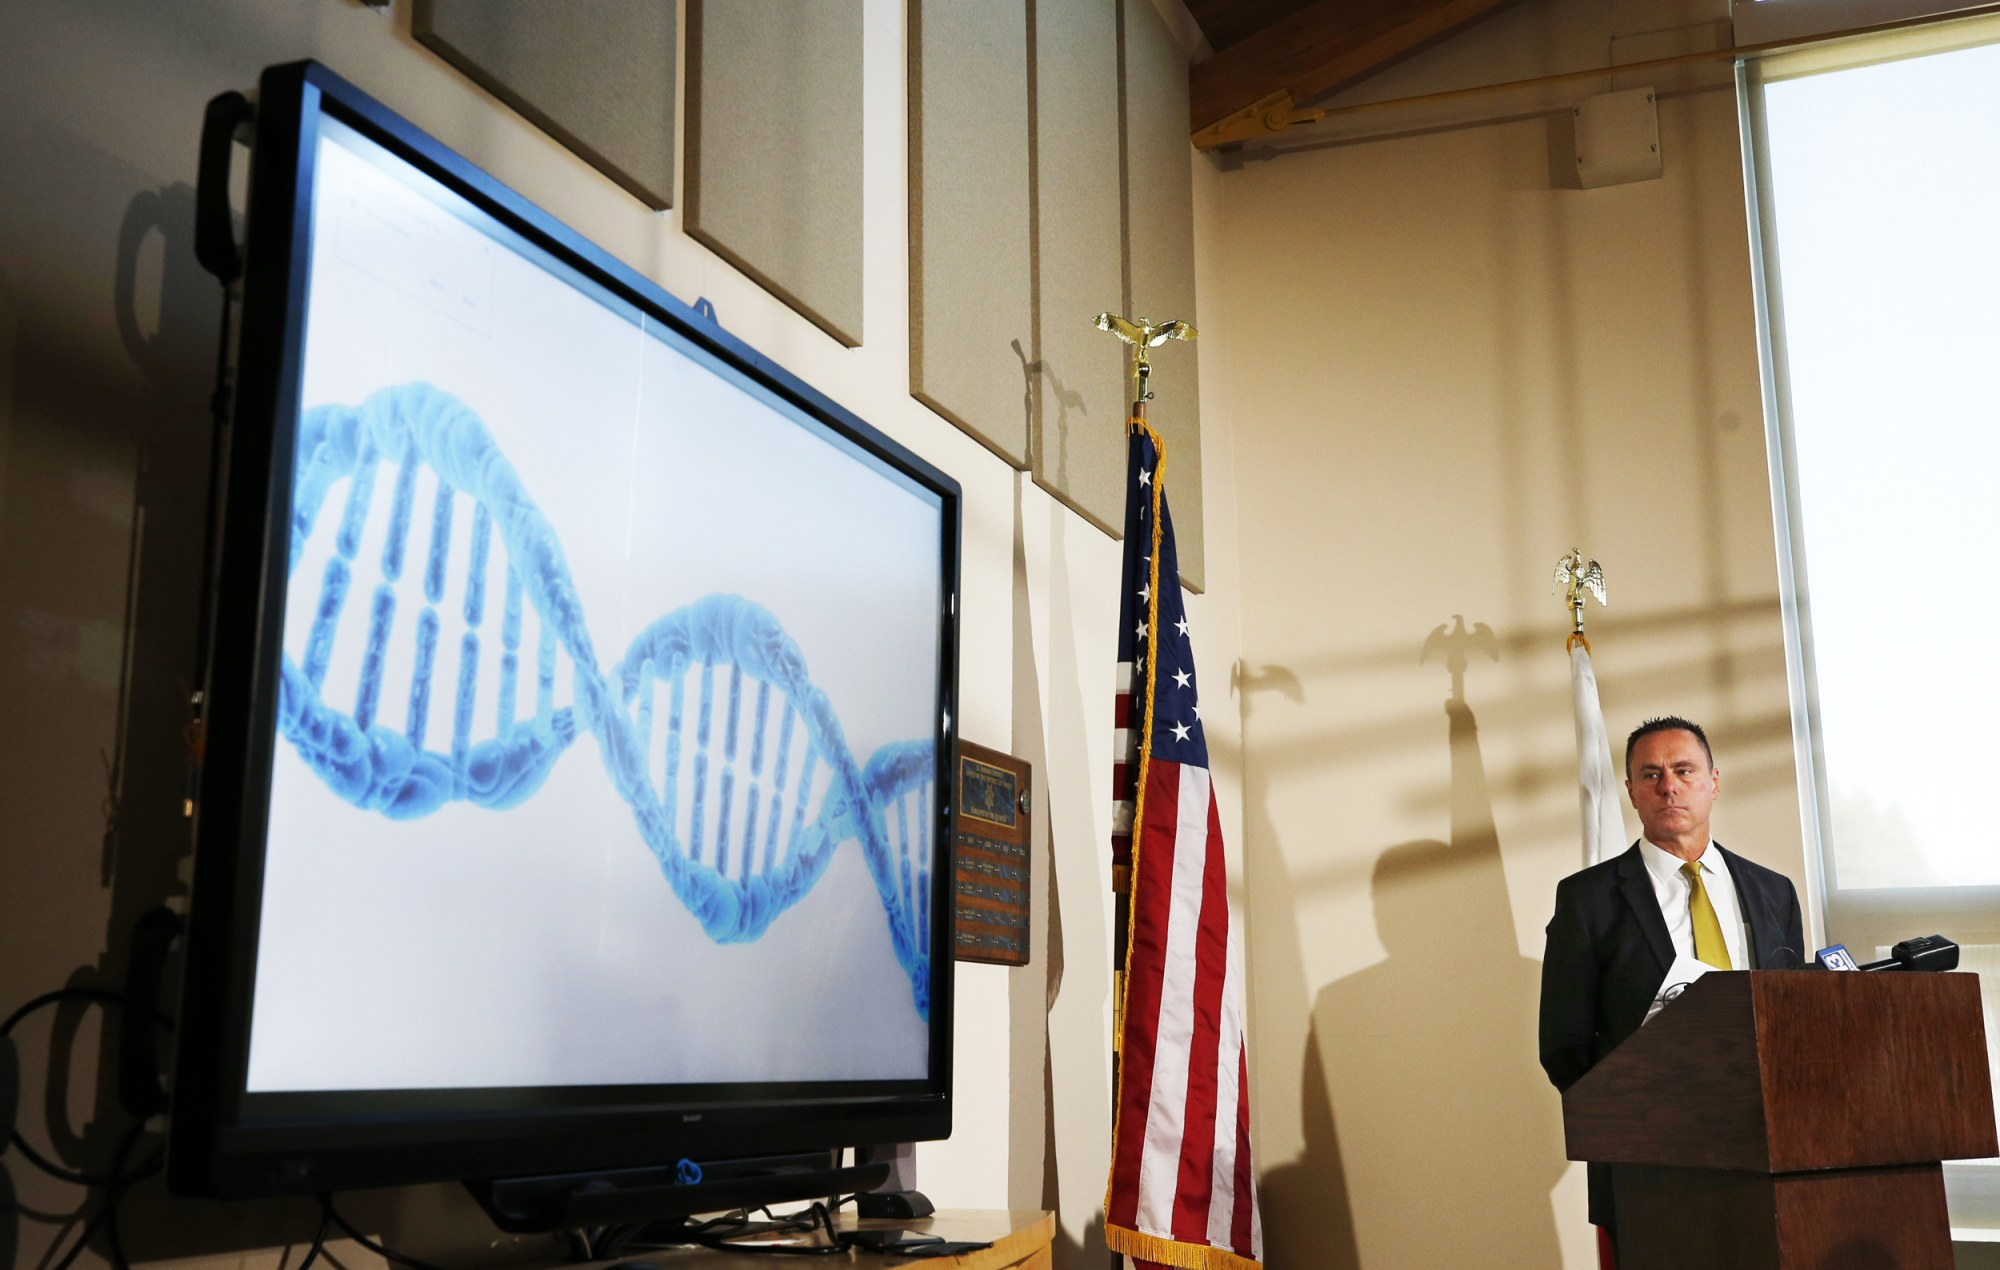 DNA Evidence Leads to Arest in 1995 Rape Case in California